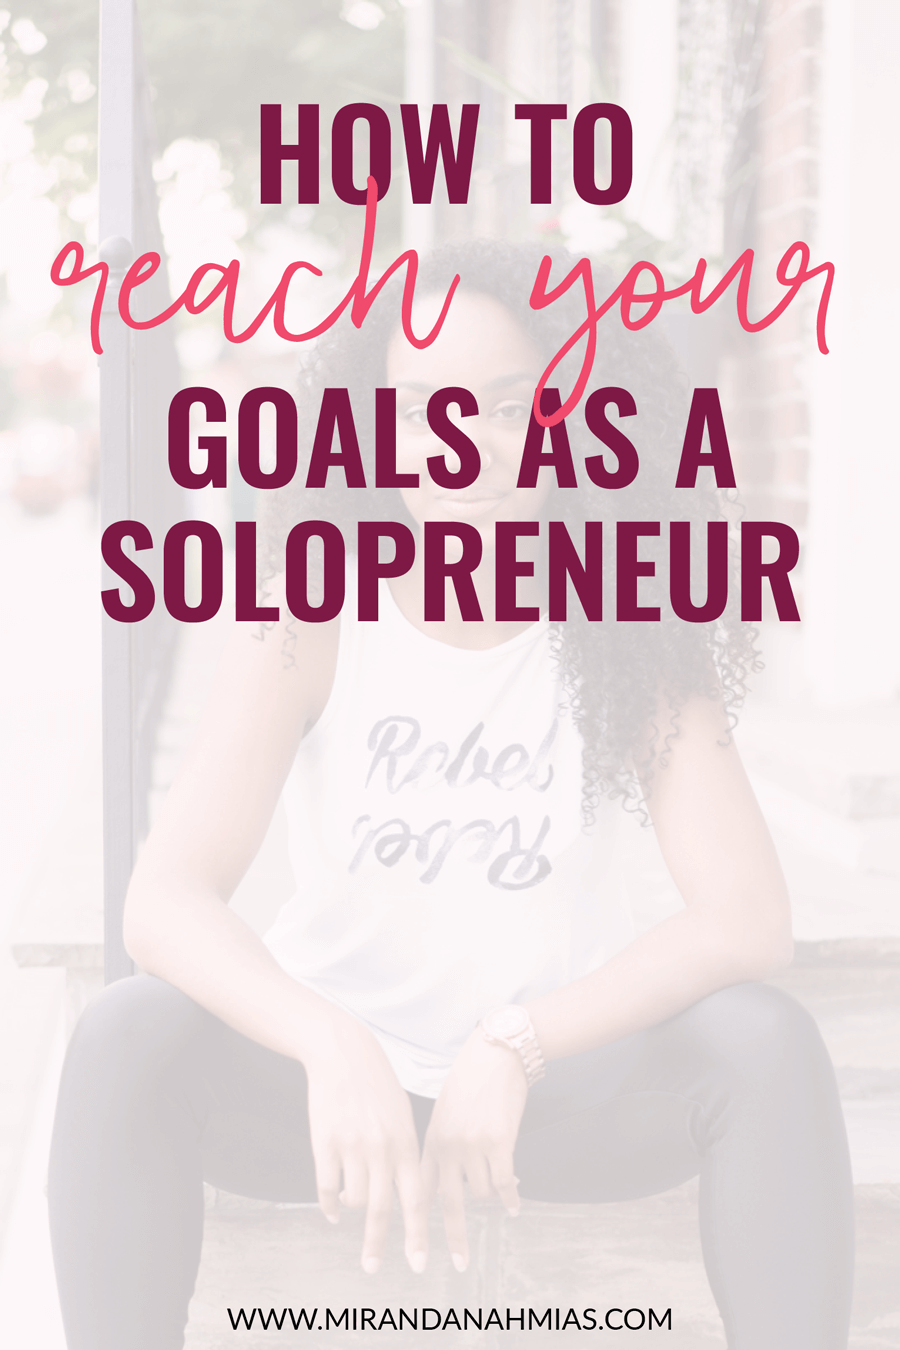 Are you ready for 2018? Here's some tips on how to reach your goals as a solopreneur | Miranda Nahmias & Co. — Score Clients and Explode Your Business with Systematic Marketing